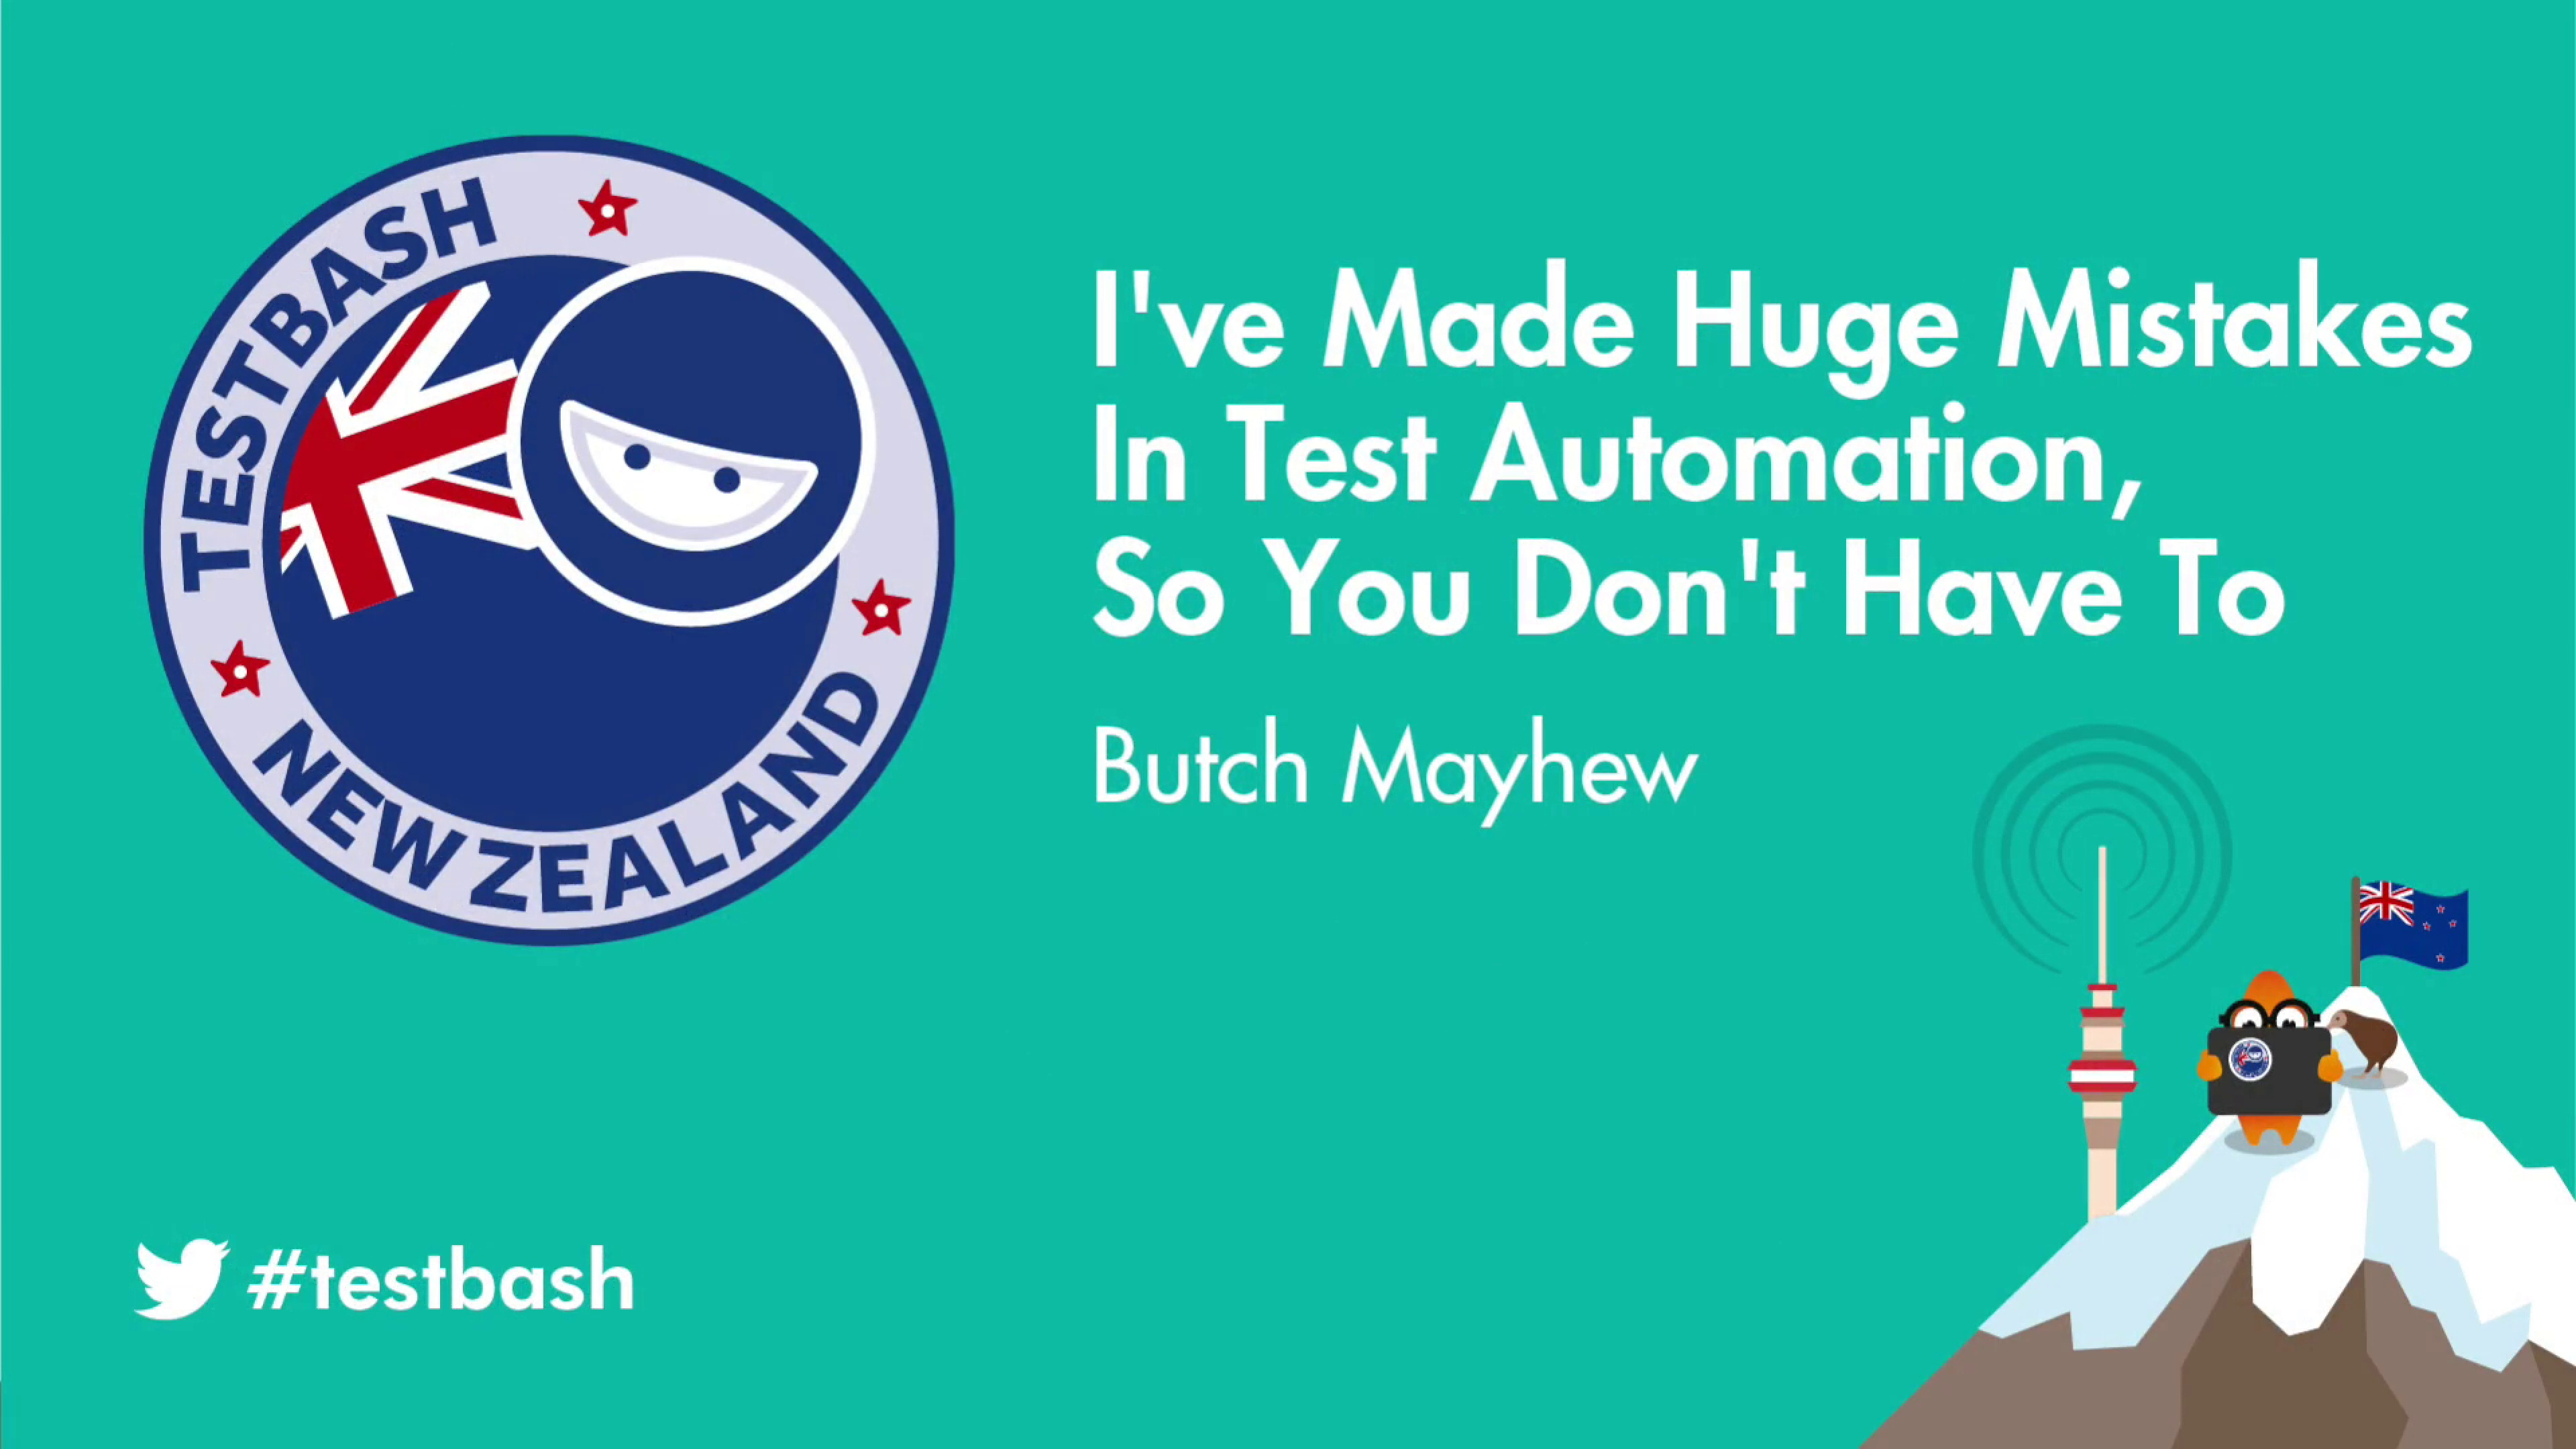 I've Made Huge Mistakes in Test Automation, so You Don't Have To - Butch Mayhew